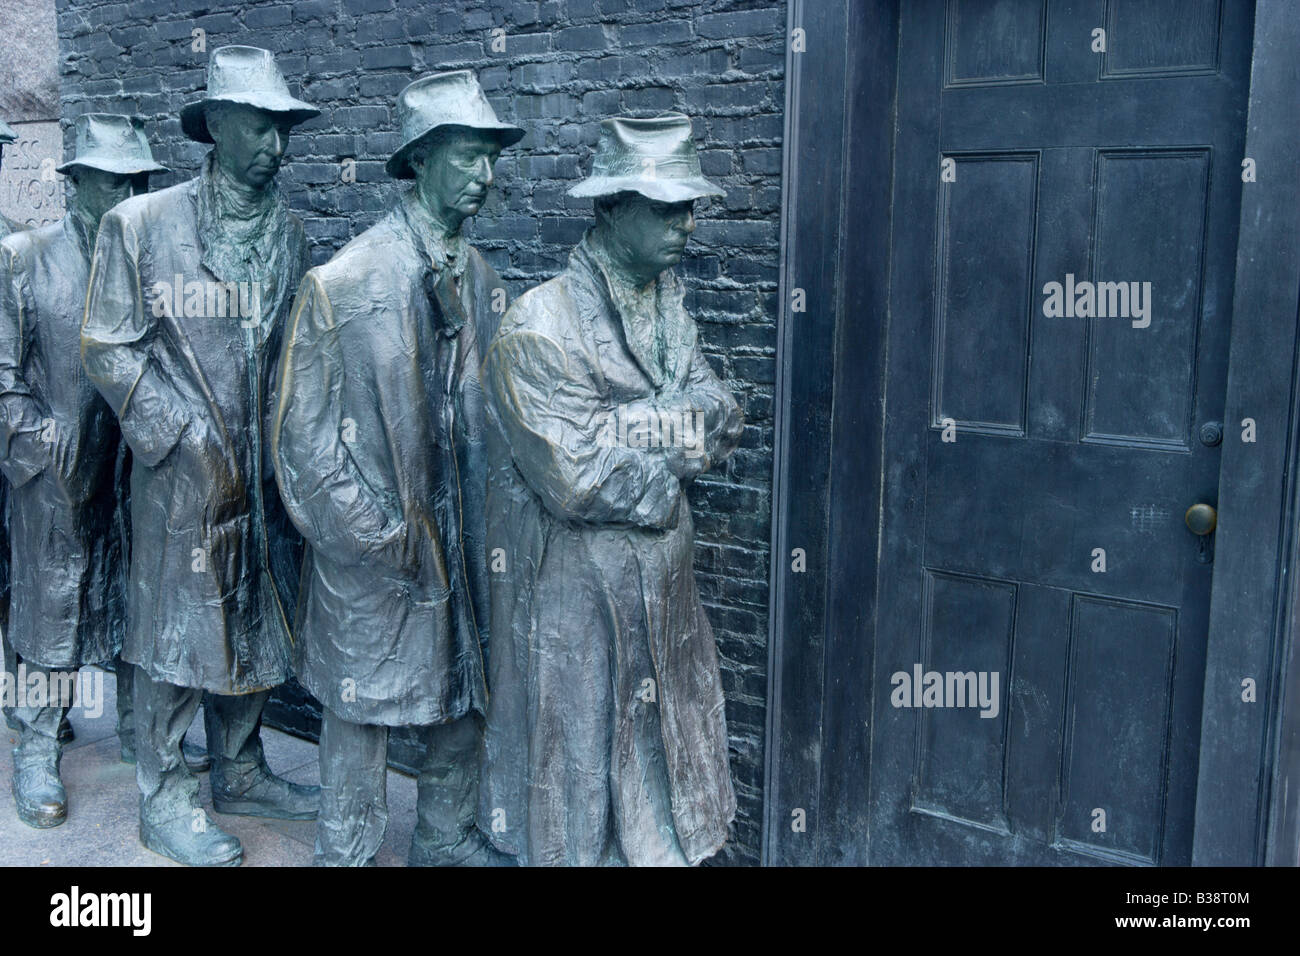 Sculpture depicting a bread line during the Great Depression at the Franklin D Roosevelt Memorial Washington D C - Stock Image